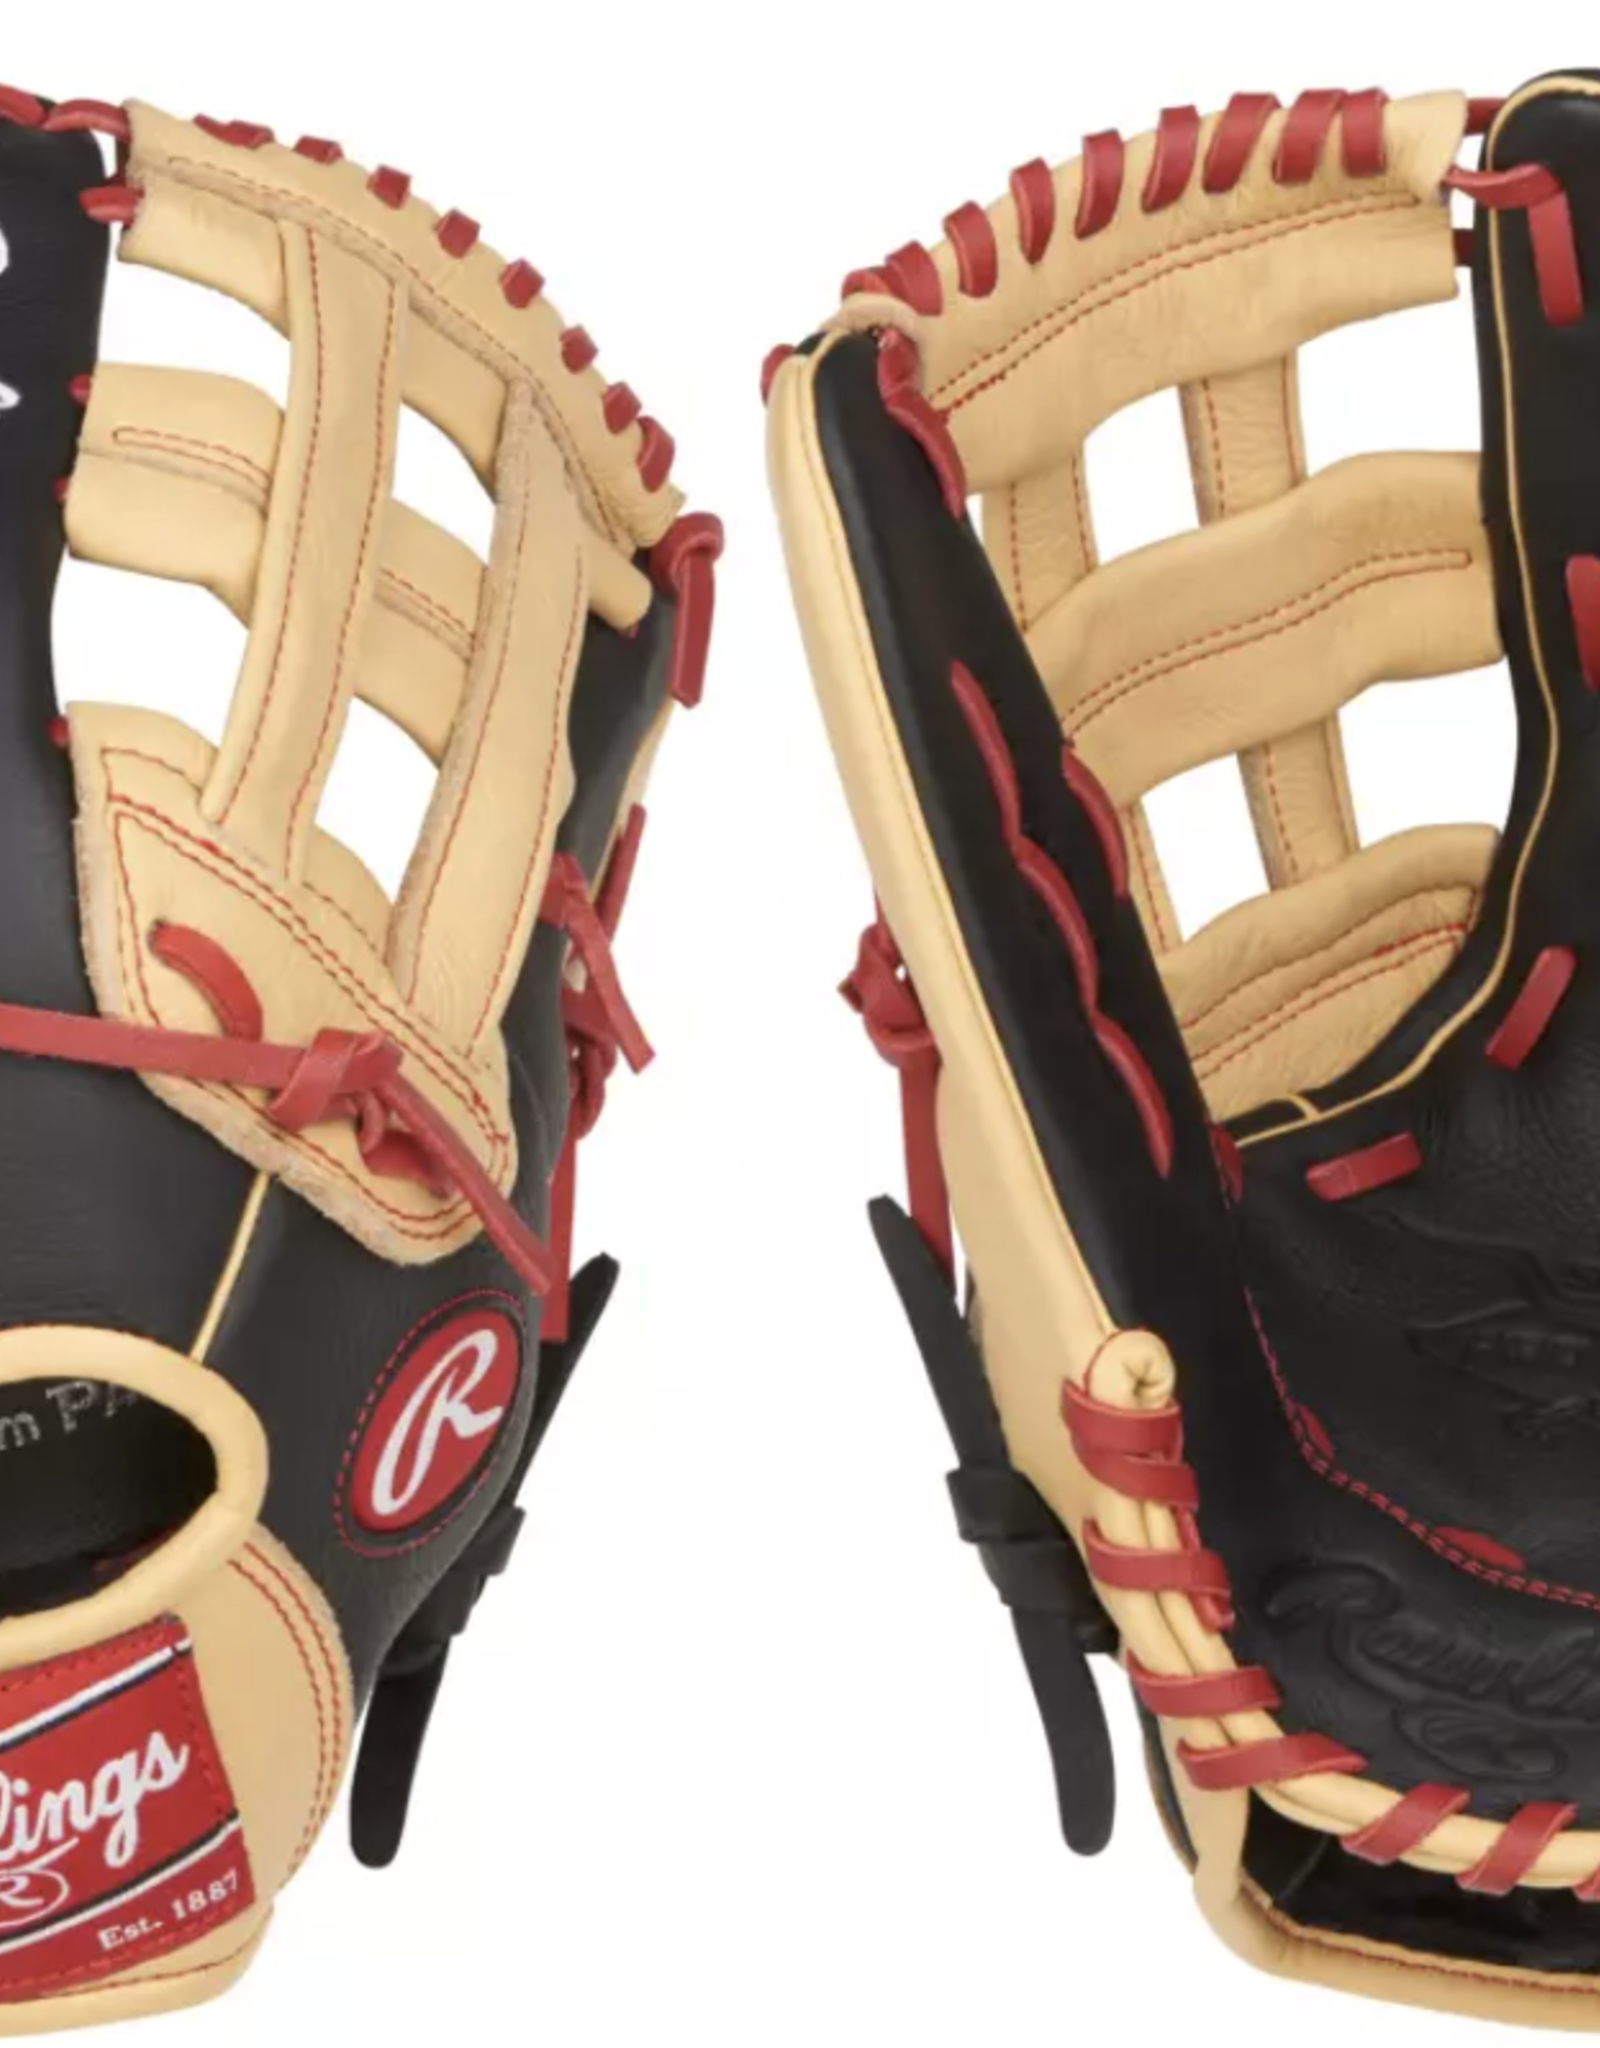 Rawlings Rawlings Select Pro Lite Harper